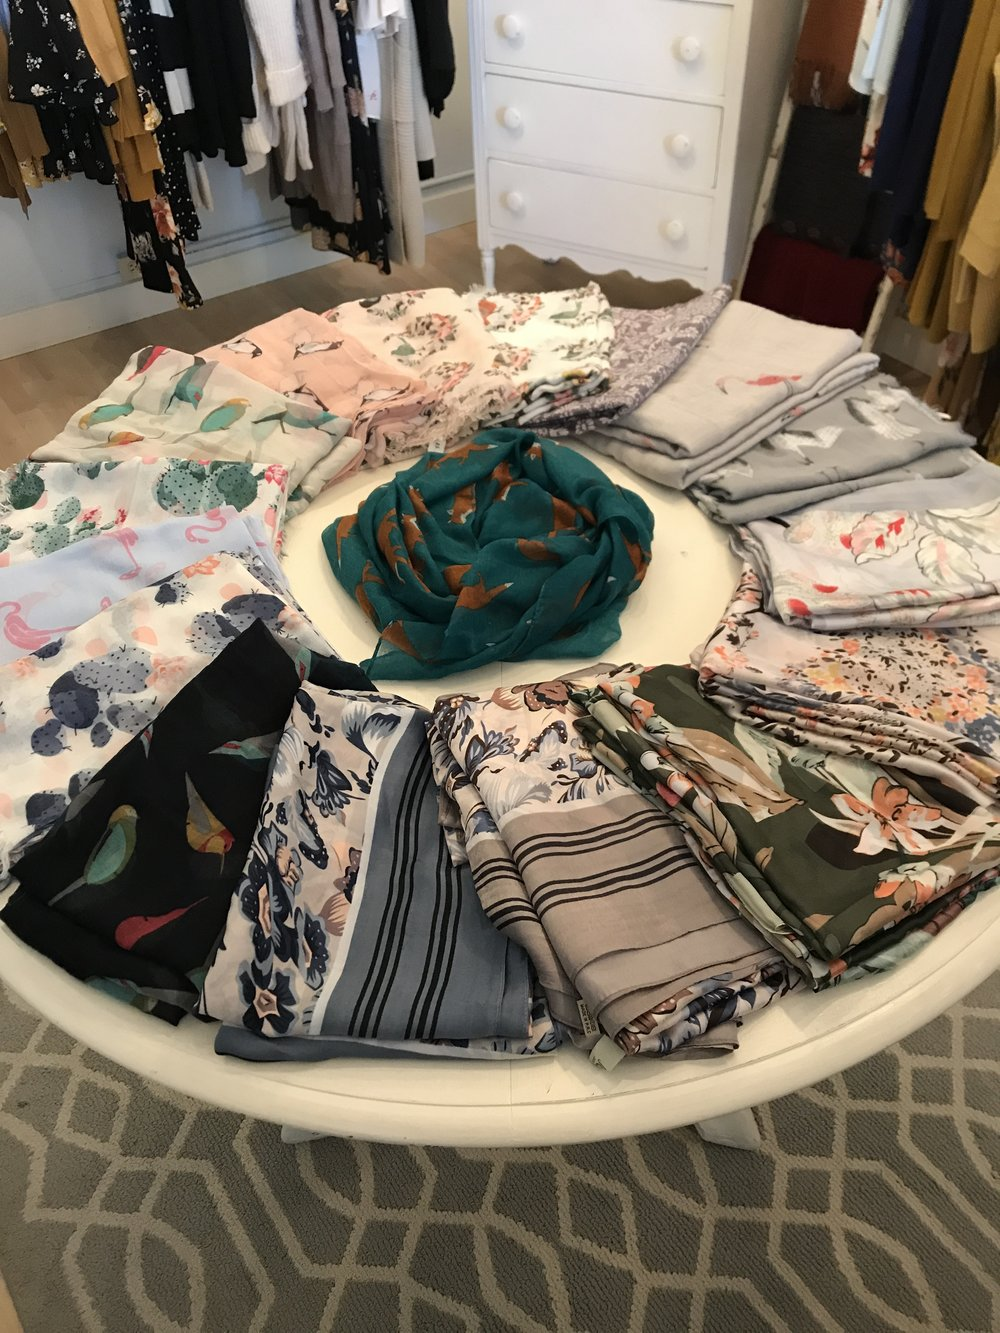 Come peruse the plethora of scarves! From penguins to foxes to flamingos and florals, the scarf table has the perfect accent to take any outfit to the next level.